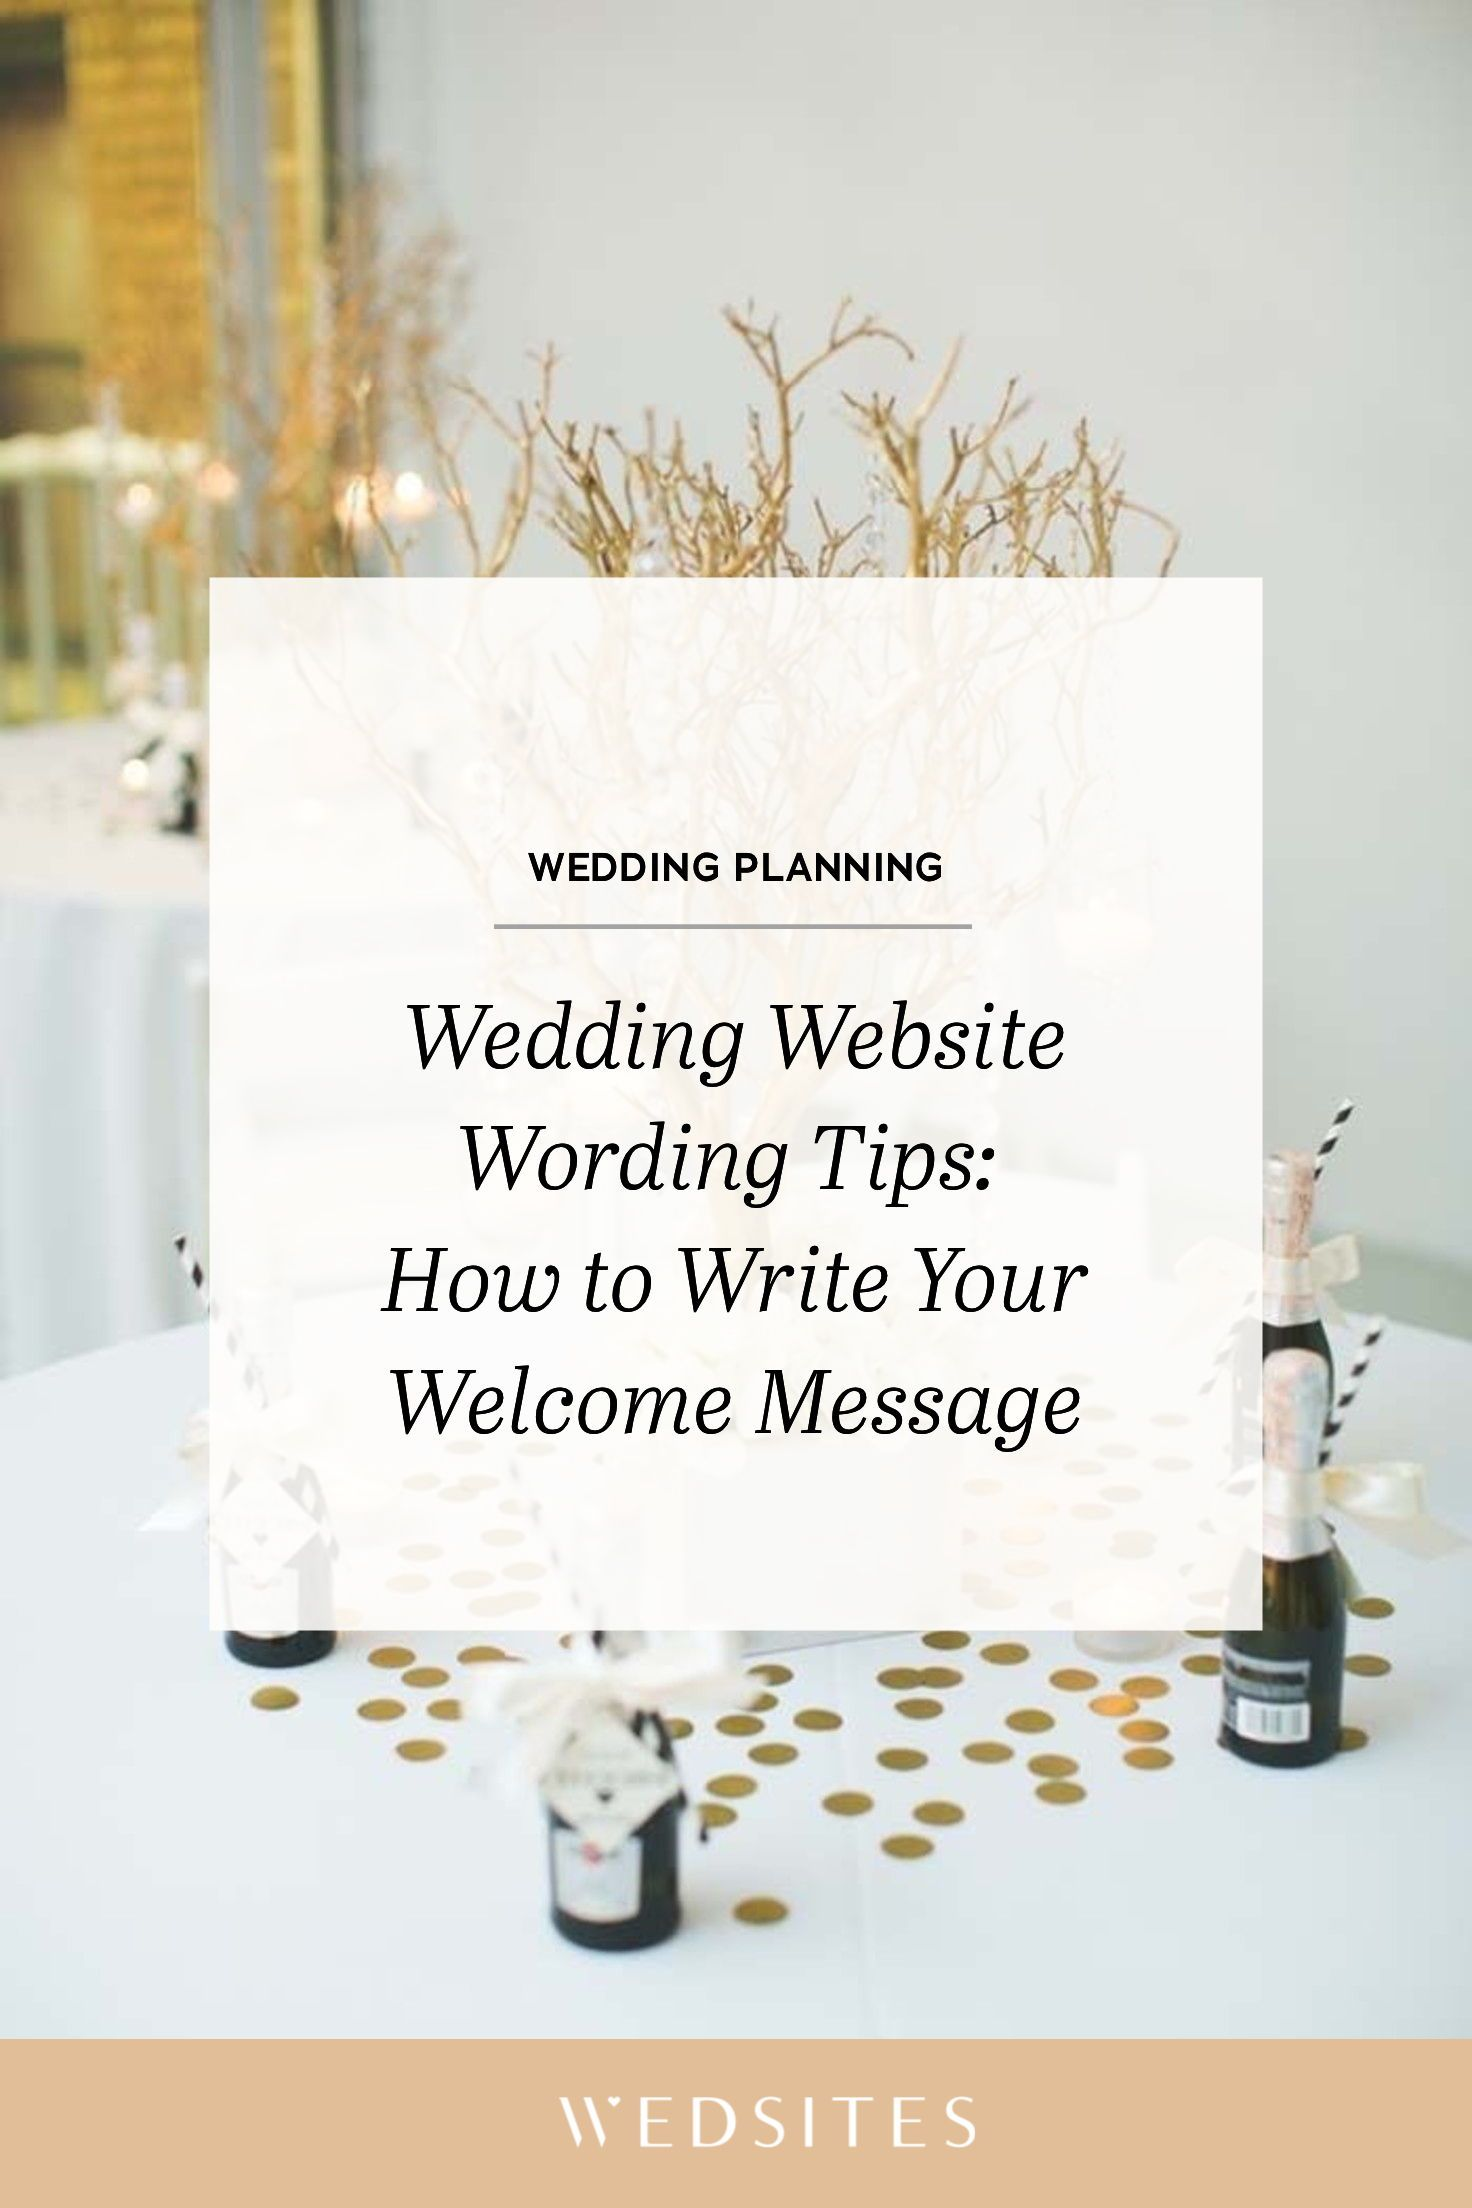 Wedding Website Wording Tips How to Write Your